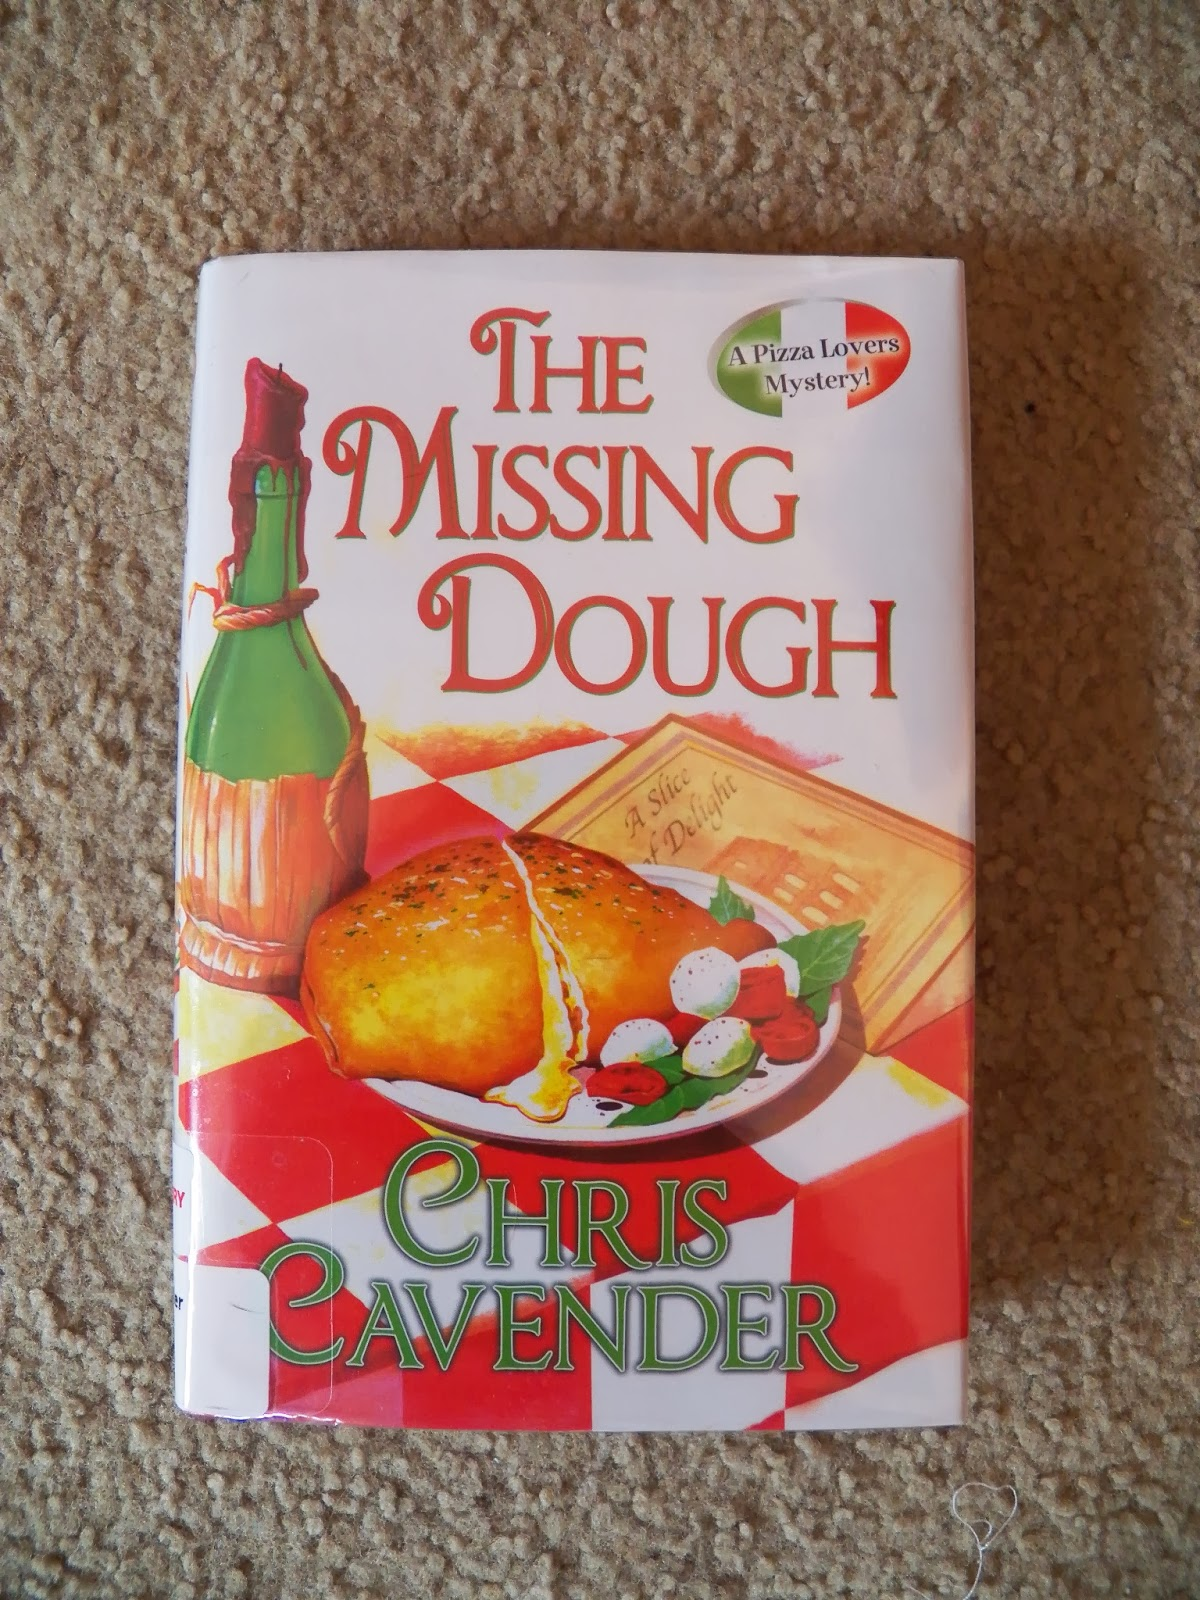 http://www.amazon.com/Missing-Dough-Pizza-Lovers-Mystery/dp/0758271549